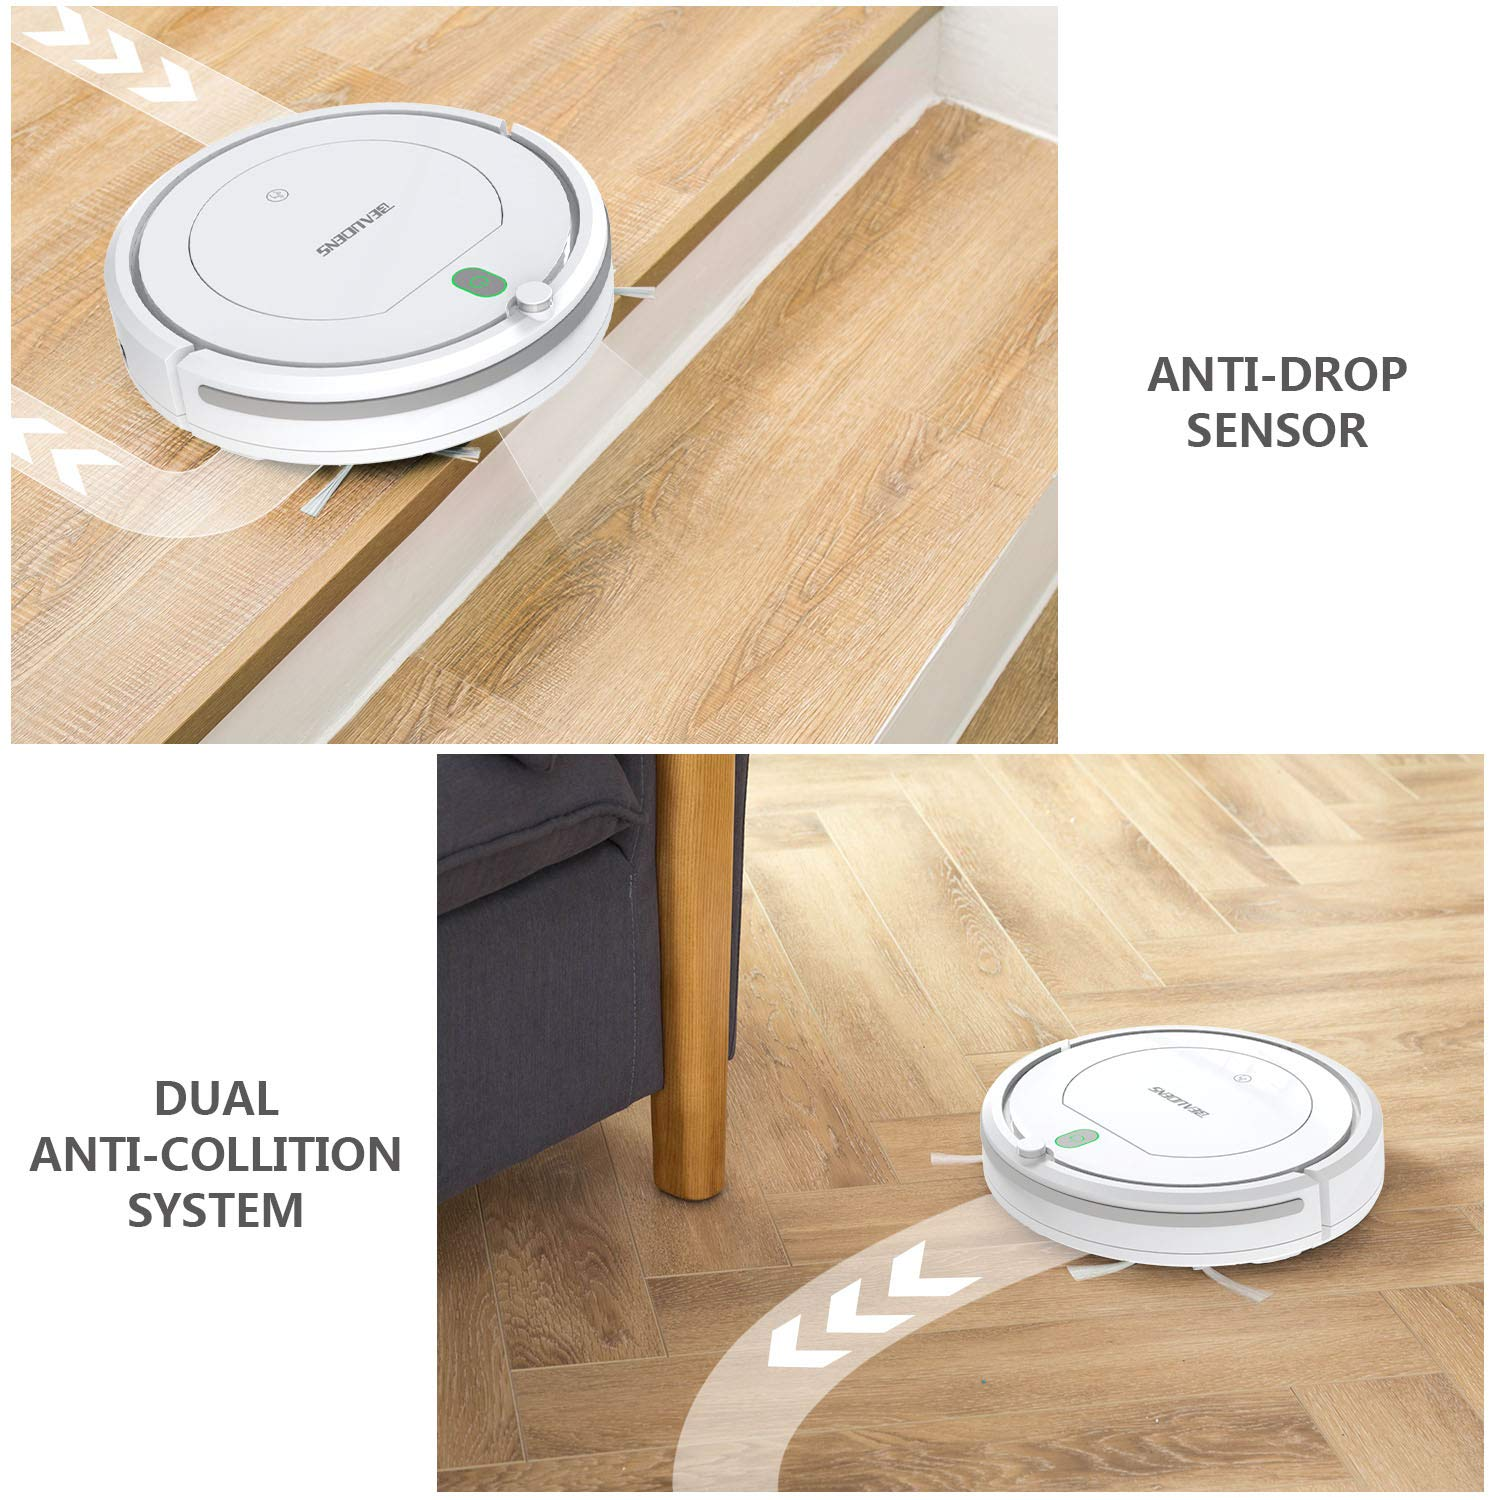 White Tangle-Free for Pet Hair and Long Hair BEAUDENS Robot Vacuum Cleaner with Slim Design Automatic Planing for Home Tile Hardwood Floors and Low Pile Carpet